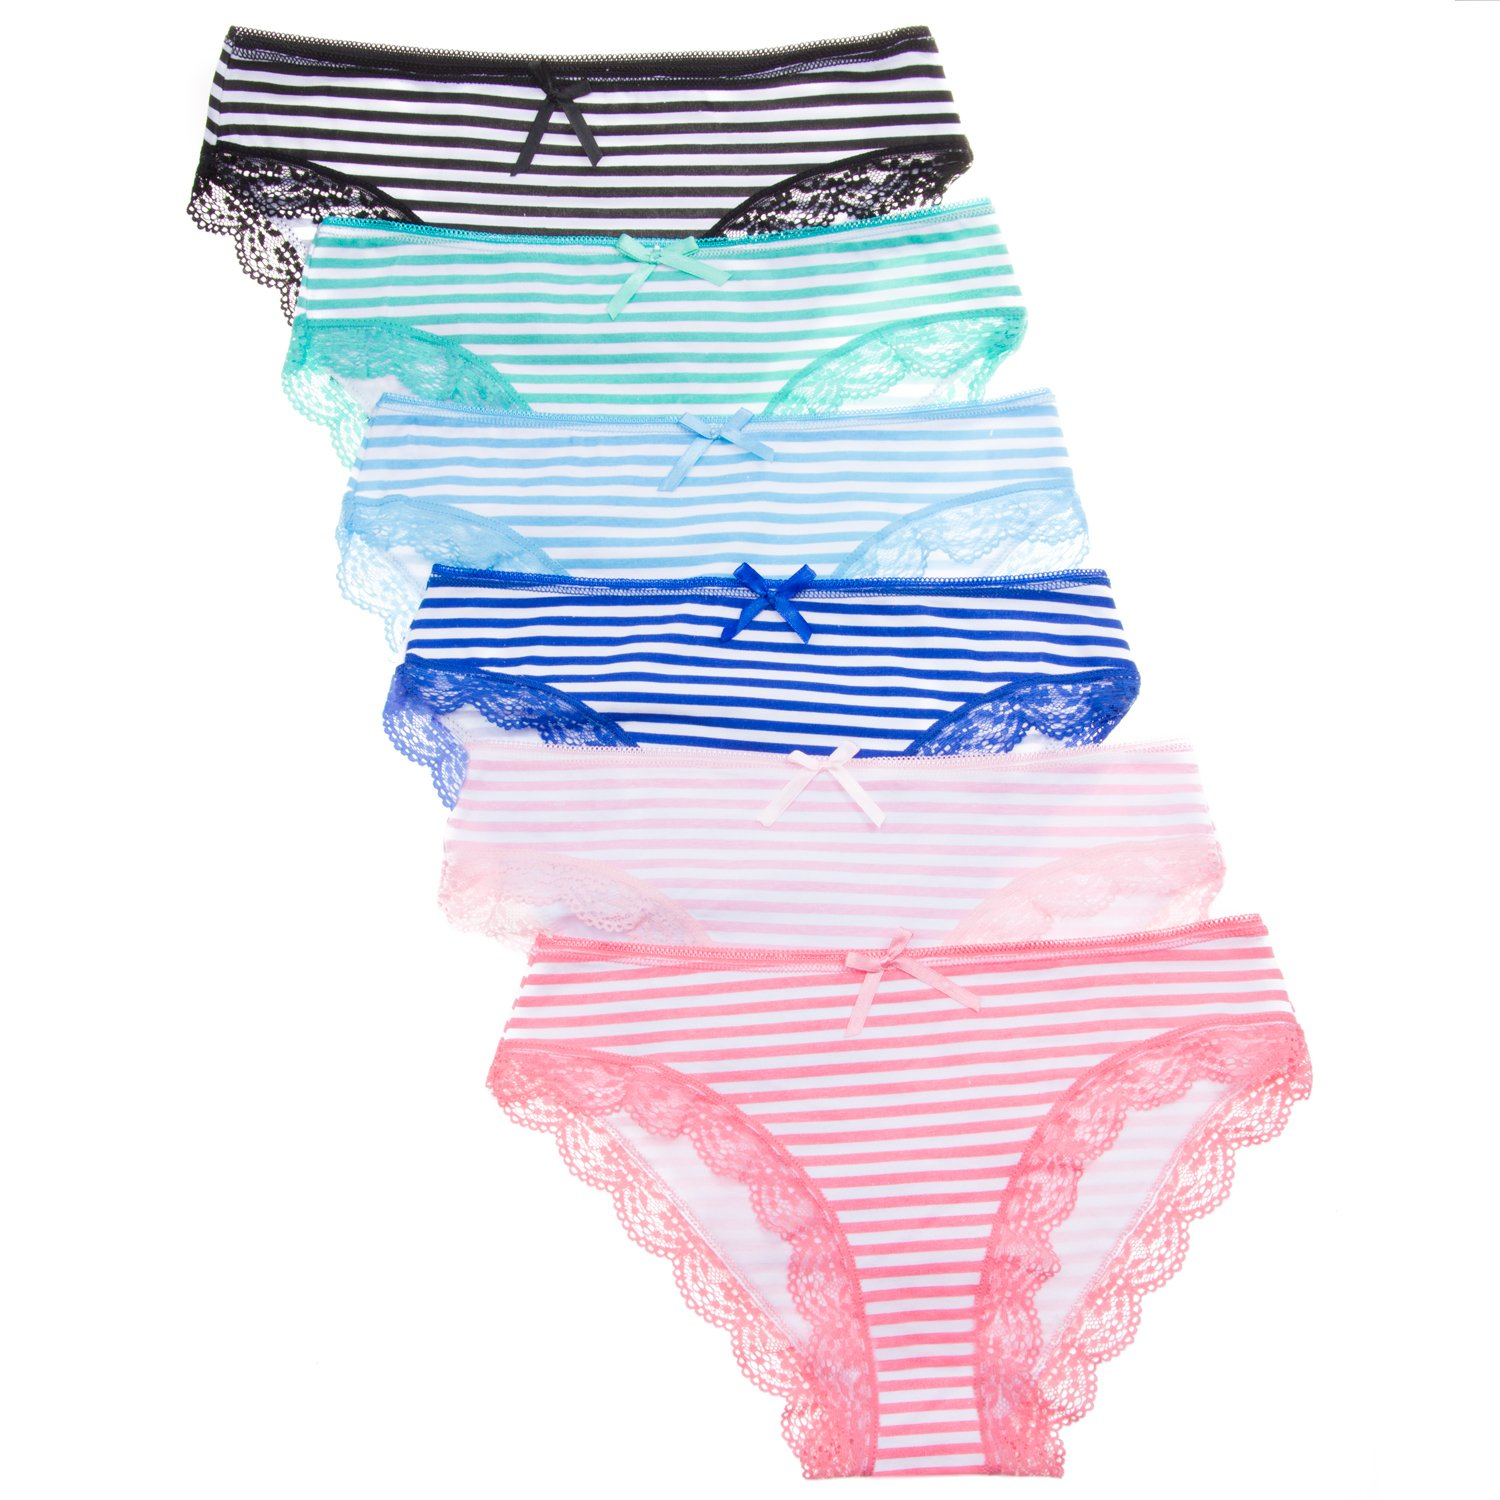 Anzermix Women's Stripe Cotton Comfortable Panties Pack of 6